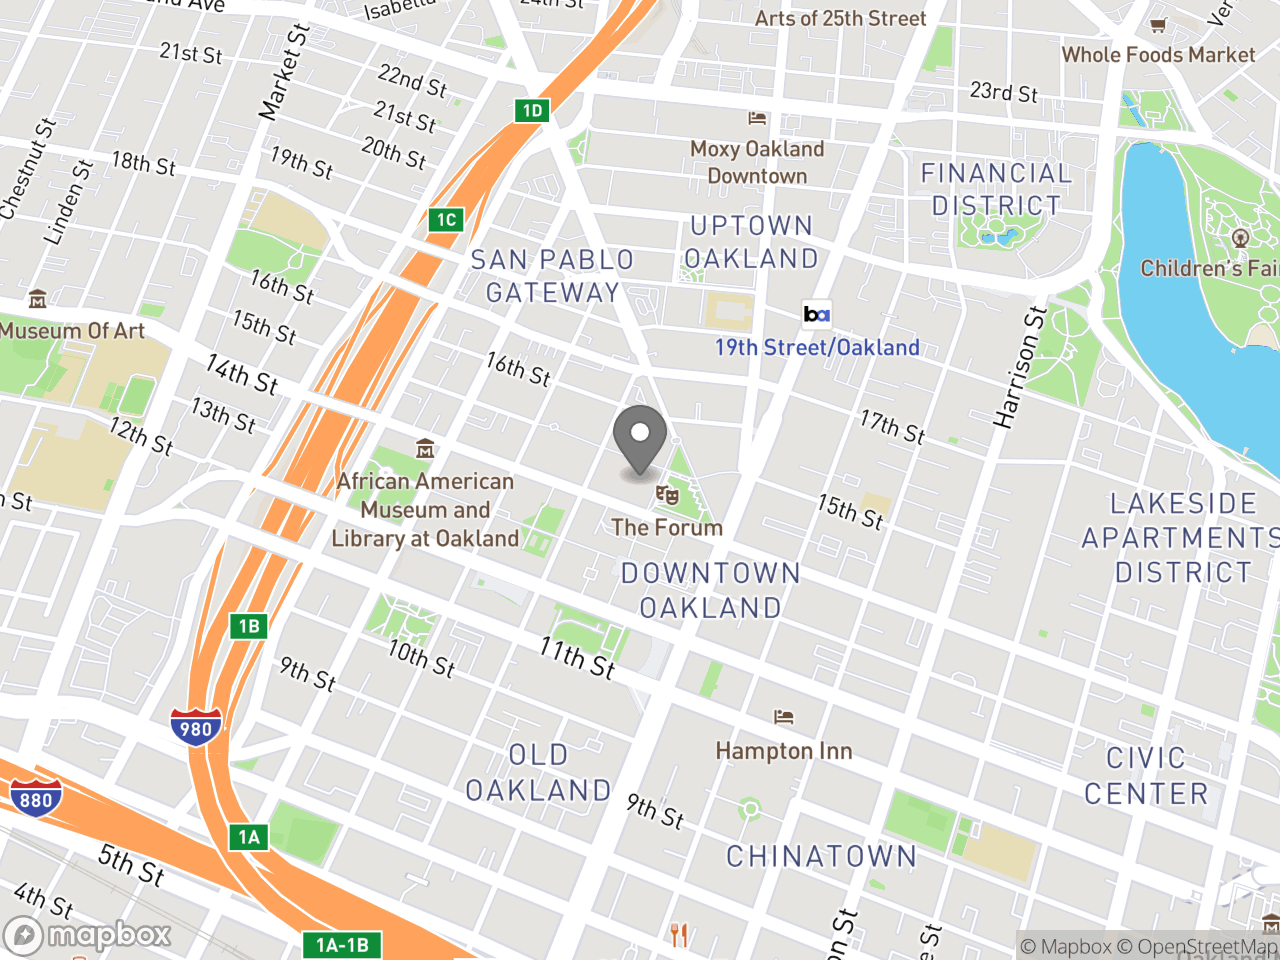 Map location for I-Bond Committee Meeting, located at 1 Frank H Ogawa Plaza, Hearing Room 3 in Oakland, CA 94612